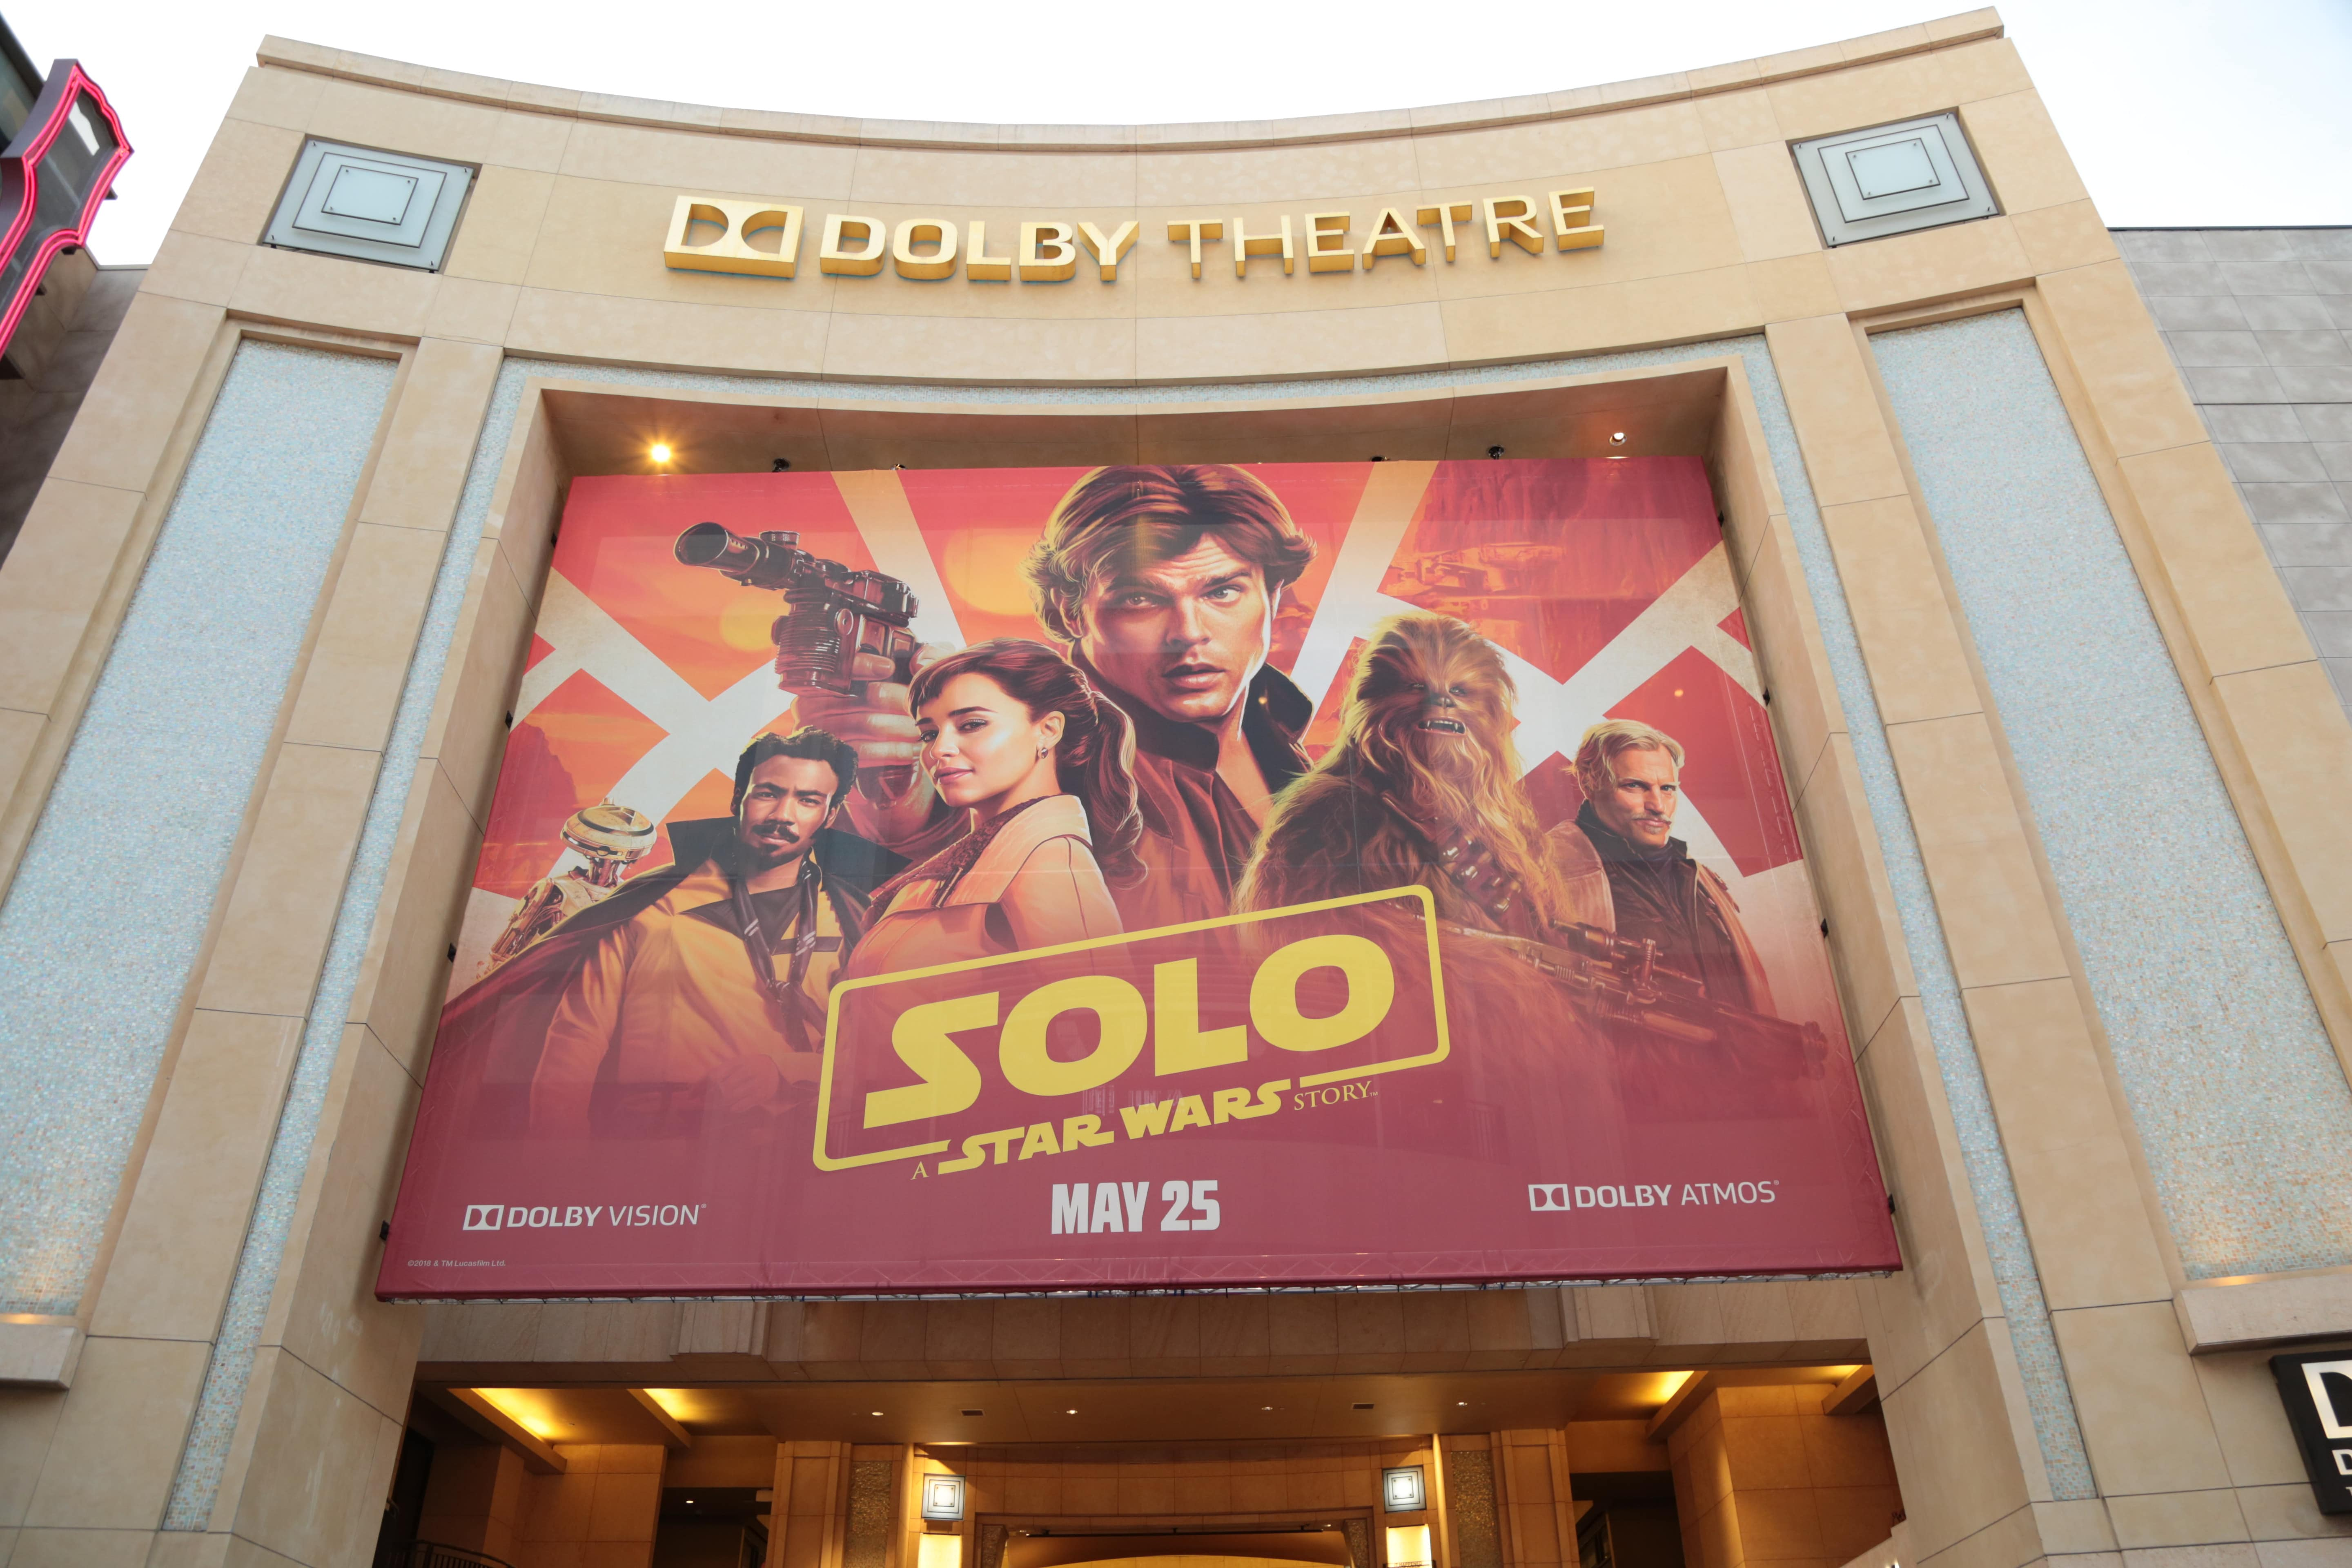 Board the Millennium Falcon at the Solo World Premiere! #HanSoloEvent #HanSolo